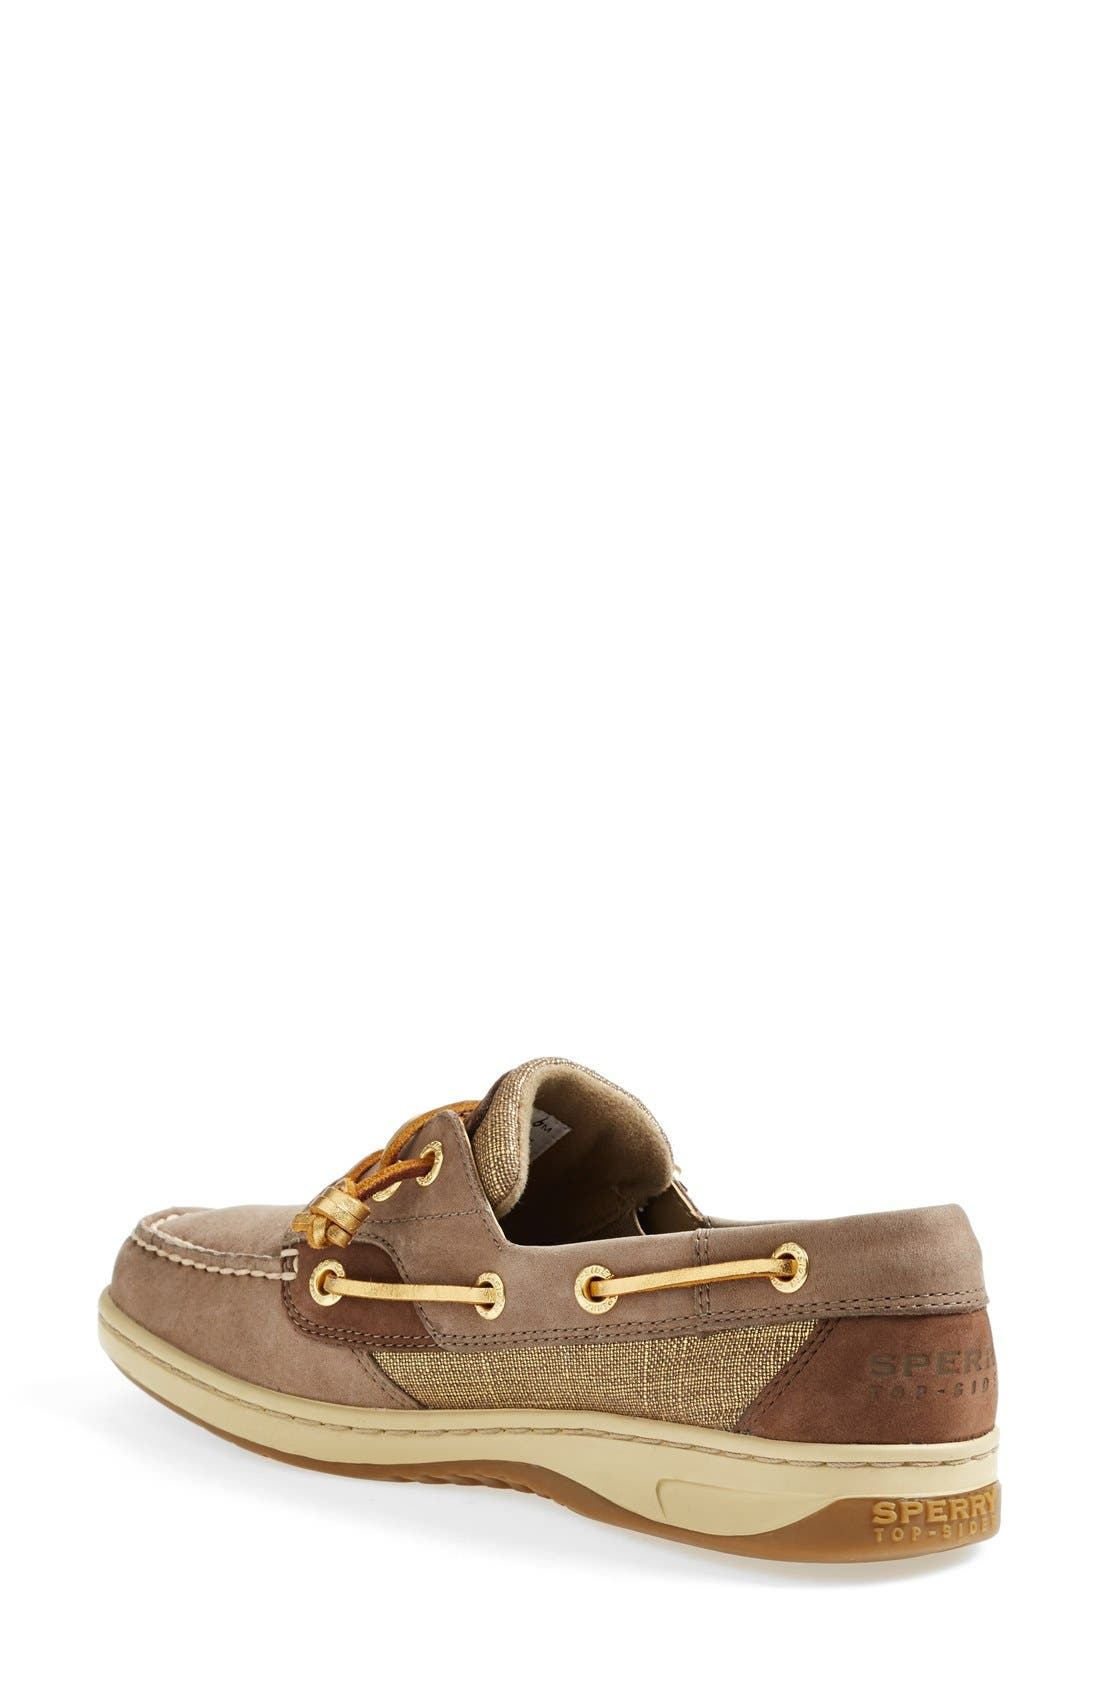 Alternate Image 2  - Sperry Top-Sider® 'Ivyfish' Boat Shoe (Women)